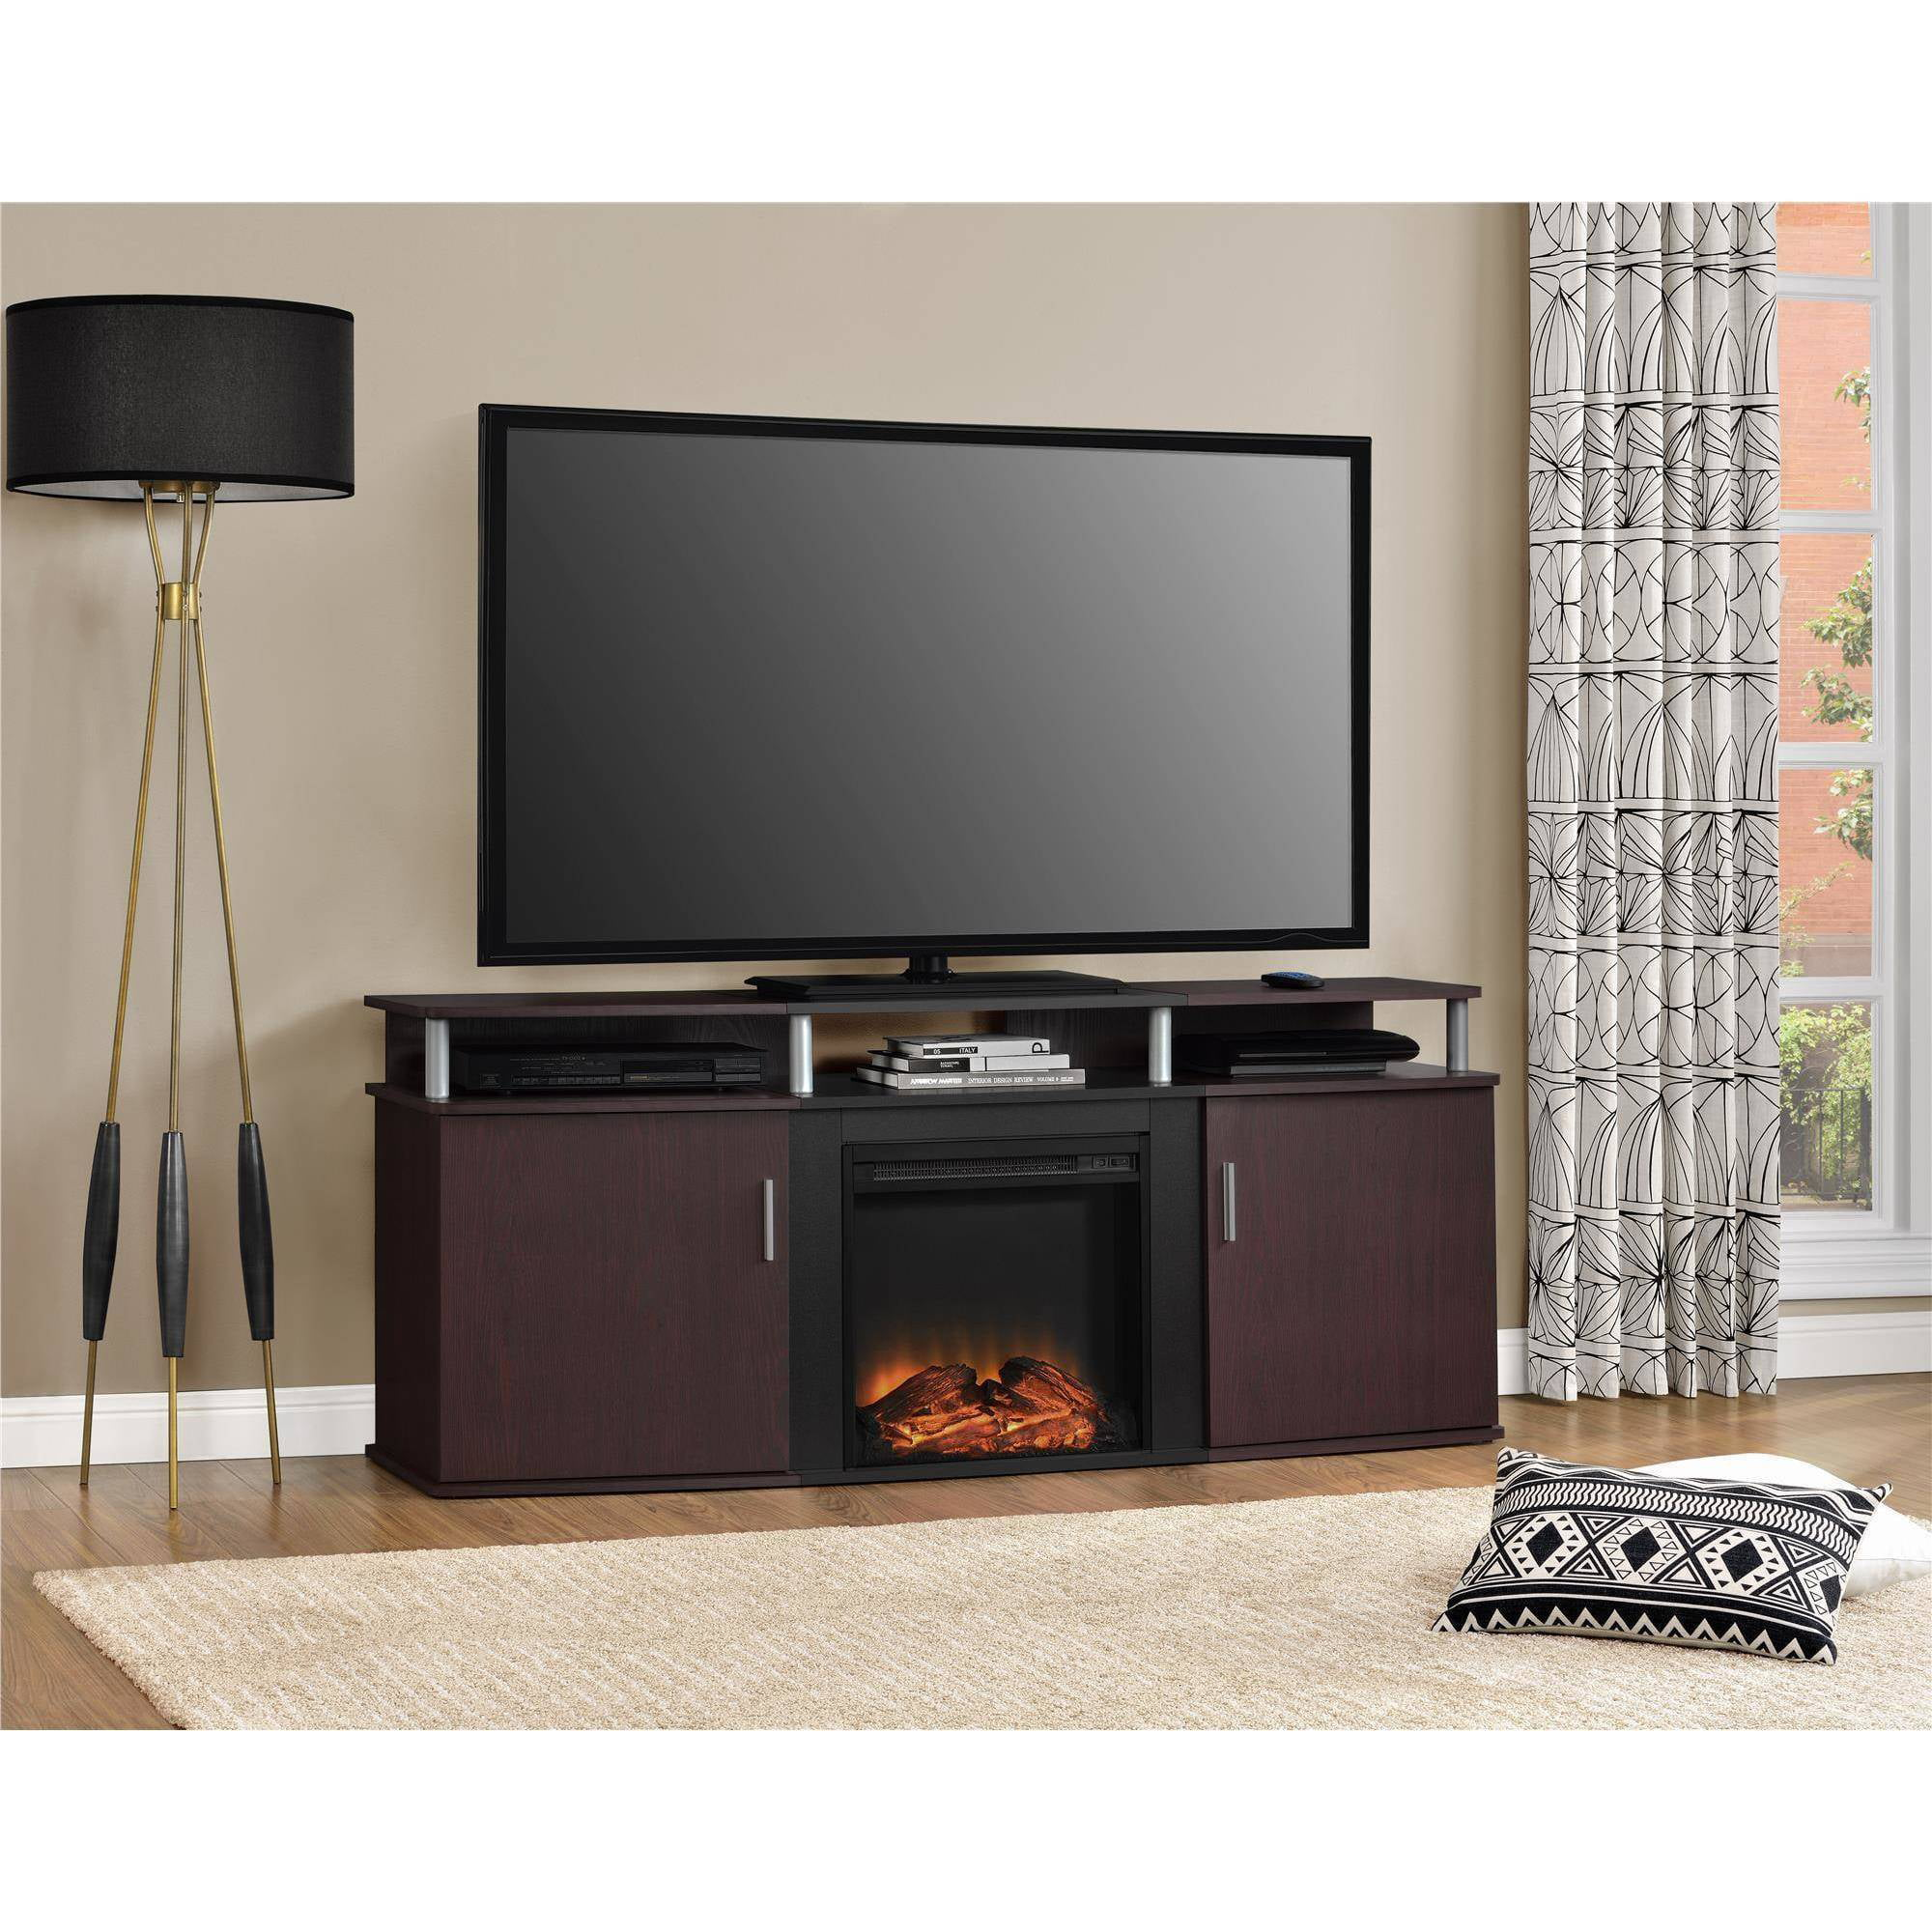 Ameriwood Home Carson Electric Fireplace TV Console for TVs up to 70\ by Ameriwood